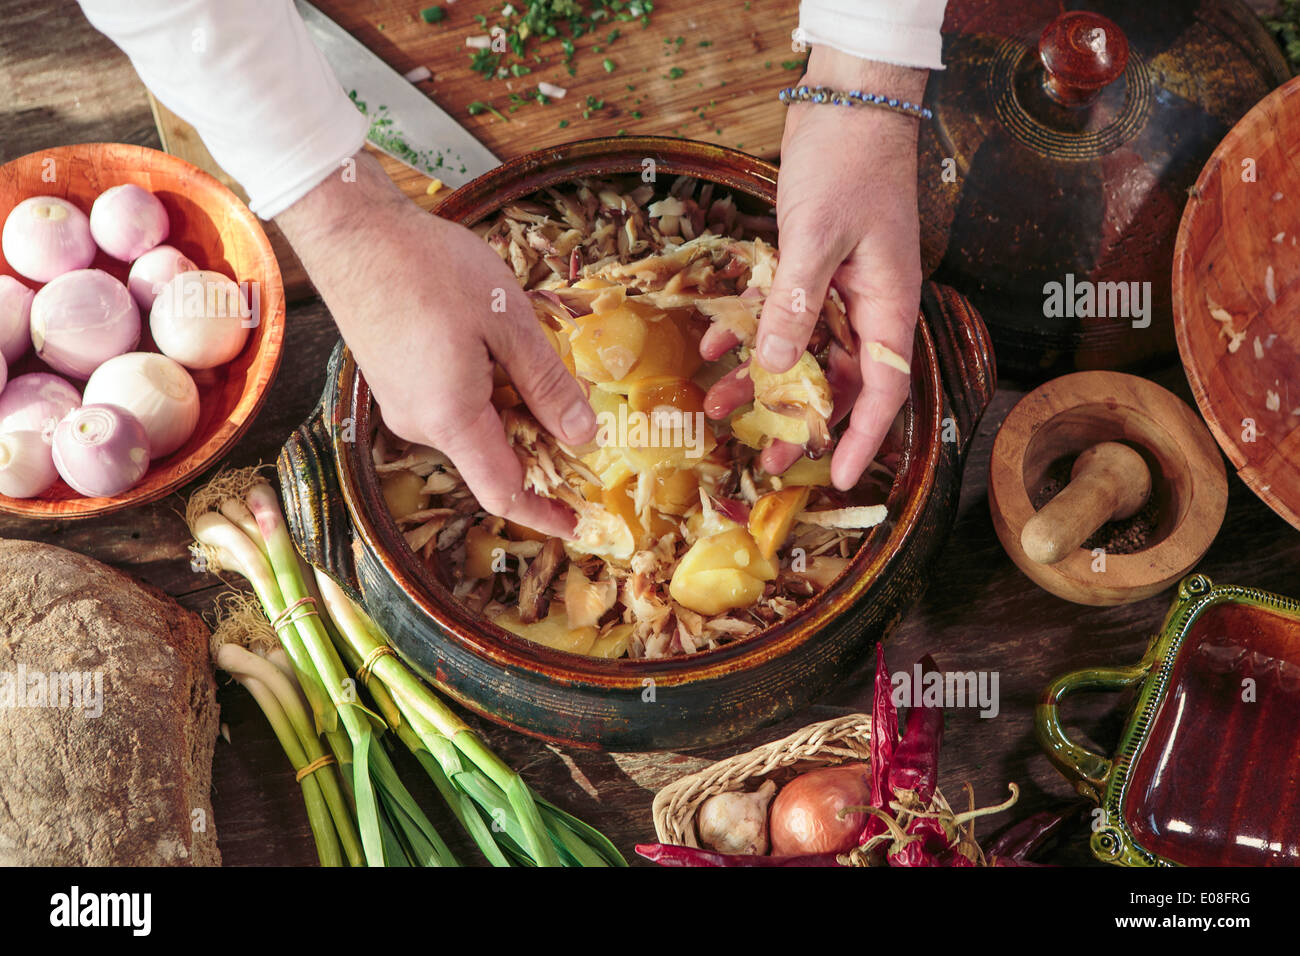 Person preparing food with many ingredients - Stock Image